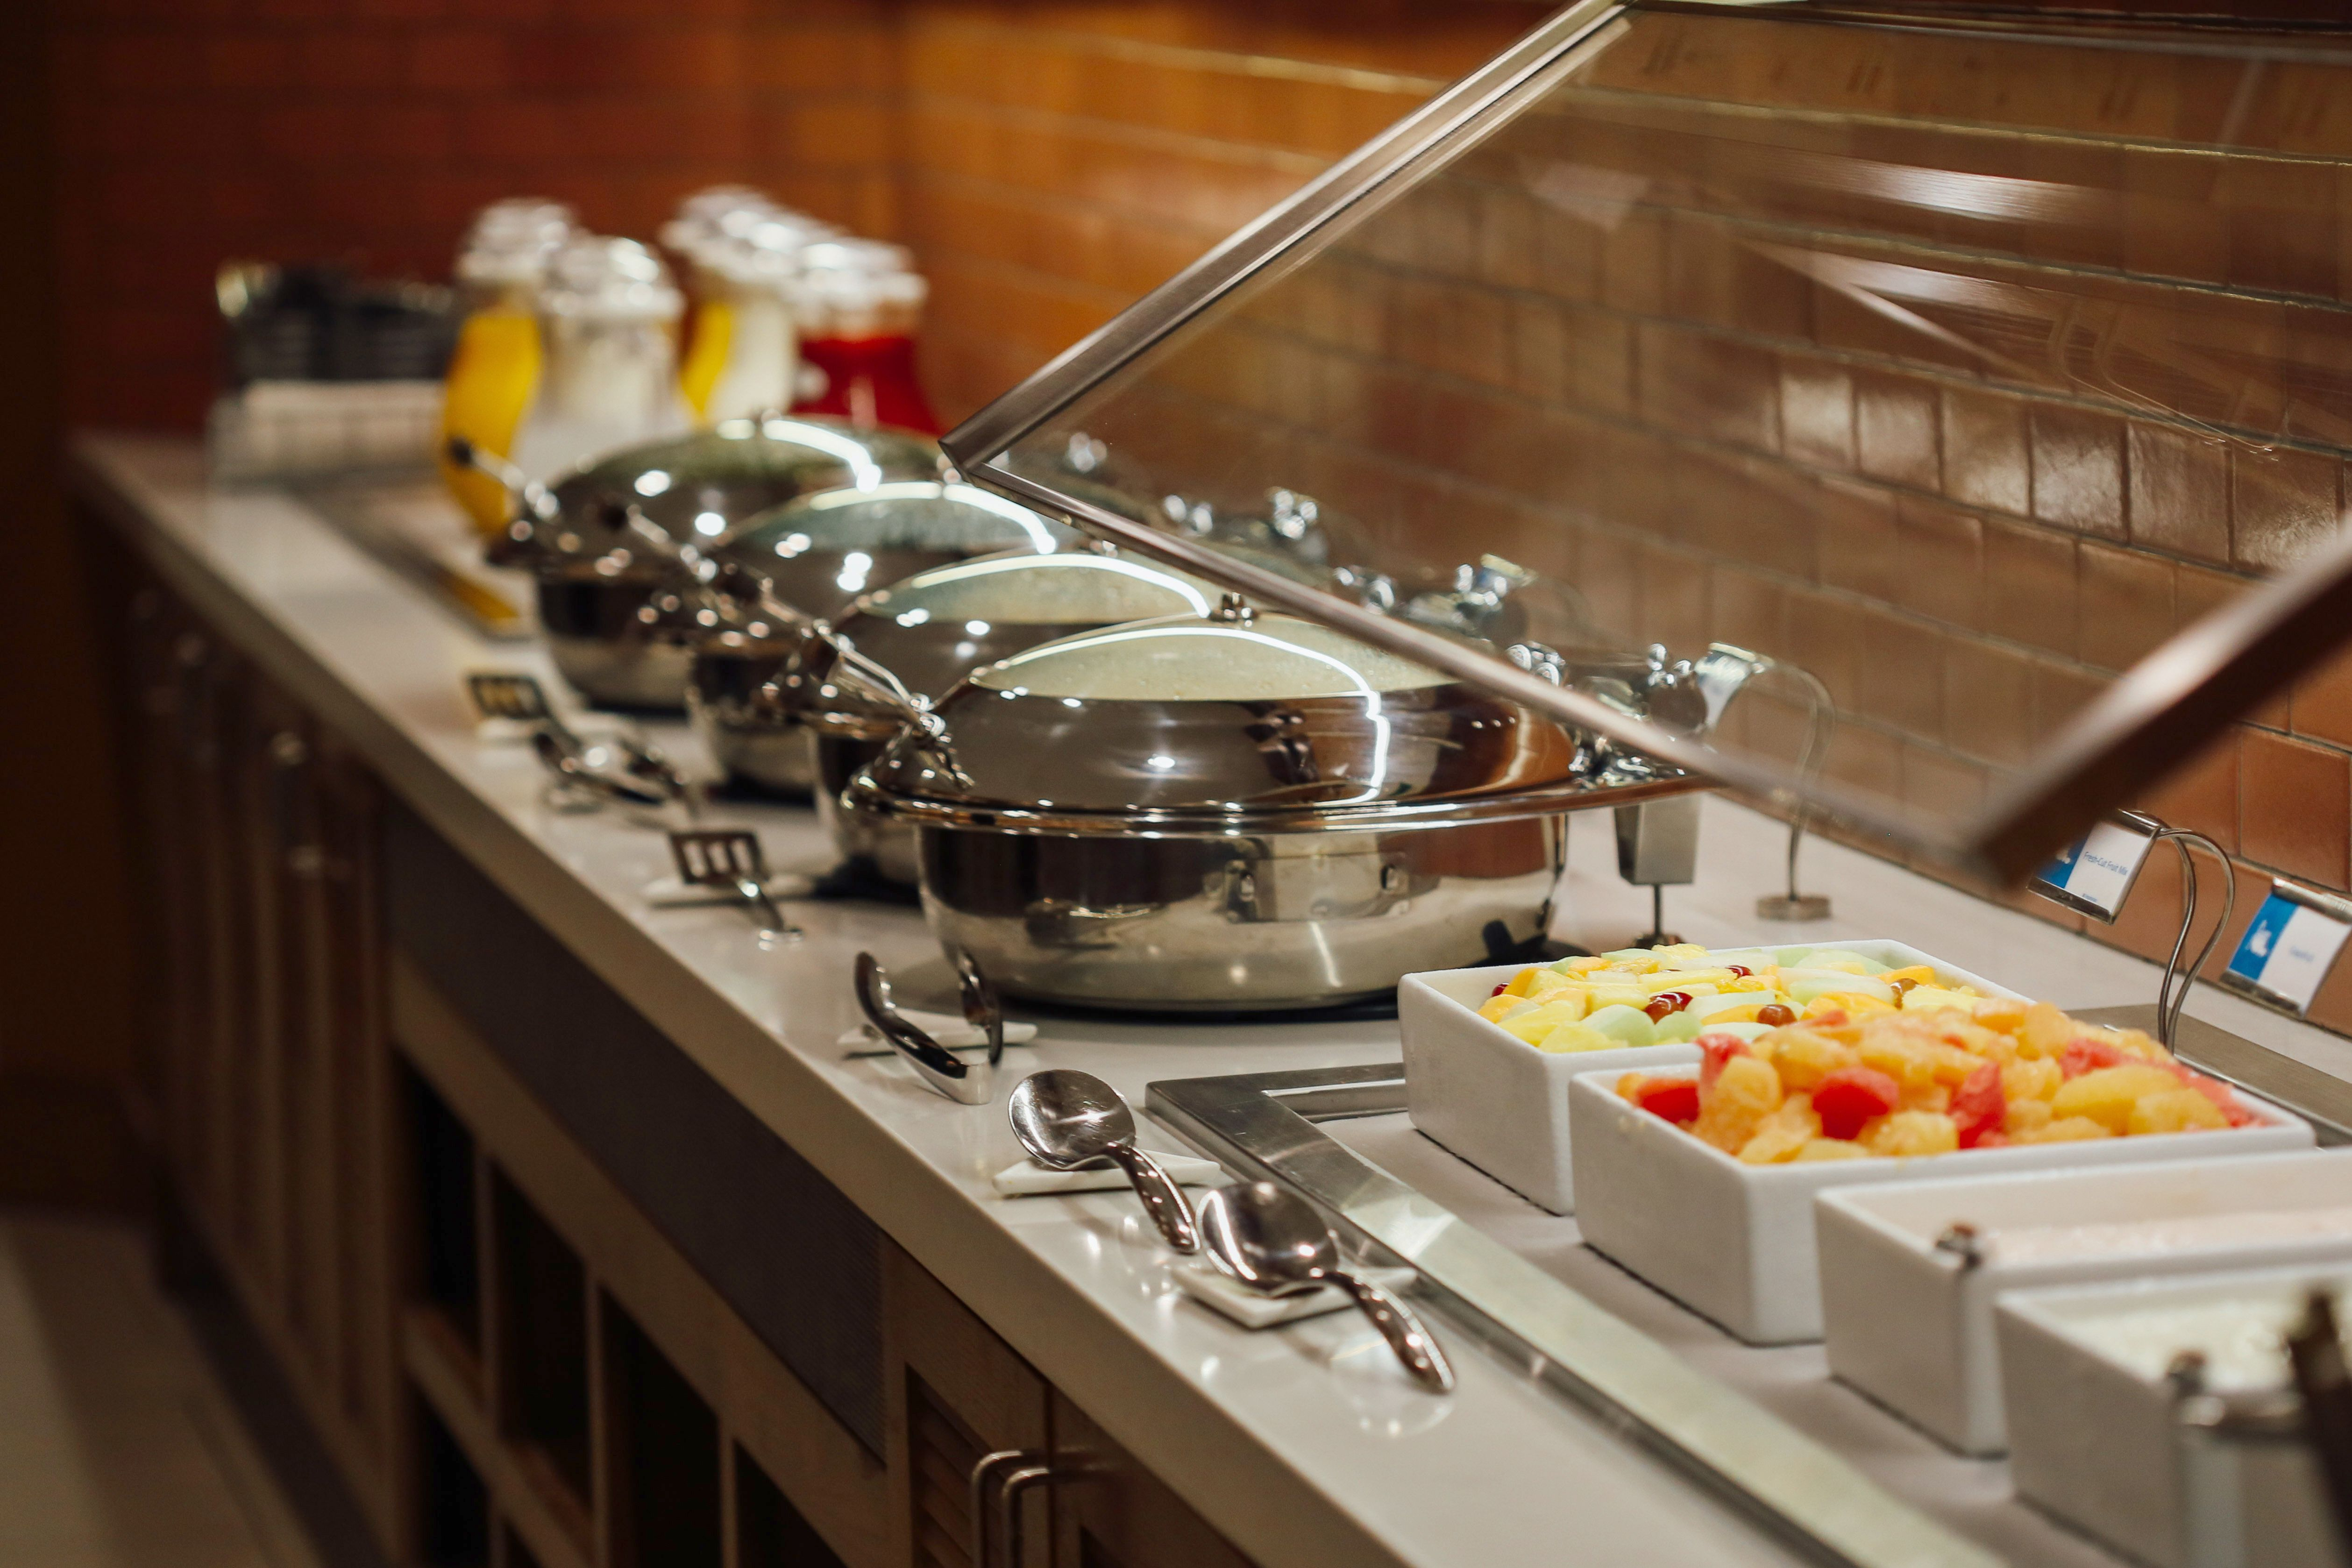 pin by ballroom on baum on our hotel with images kitchen kitchen appliances stove top on kitchen appliances id=60811